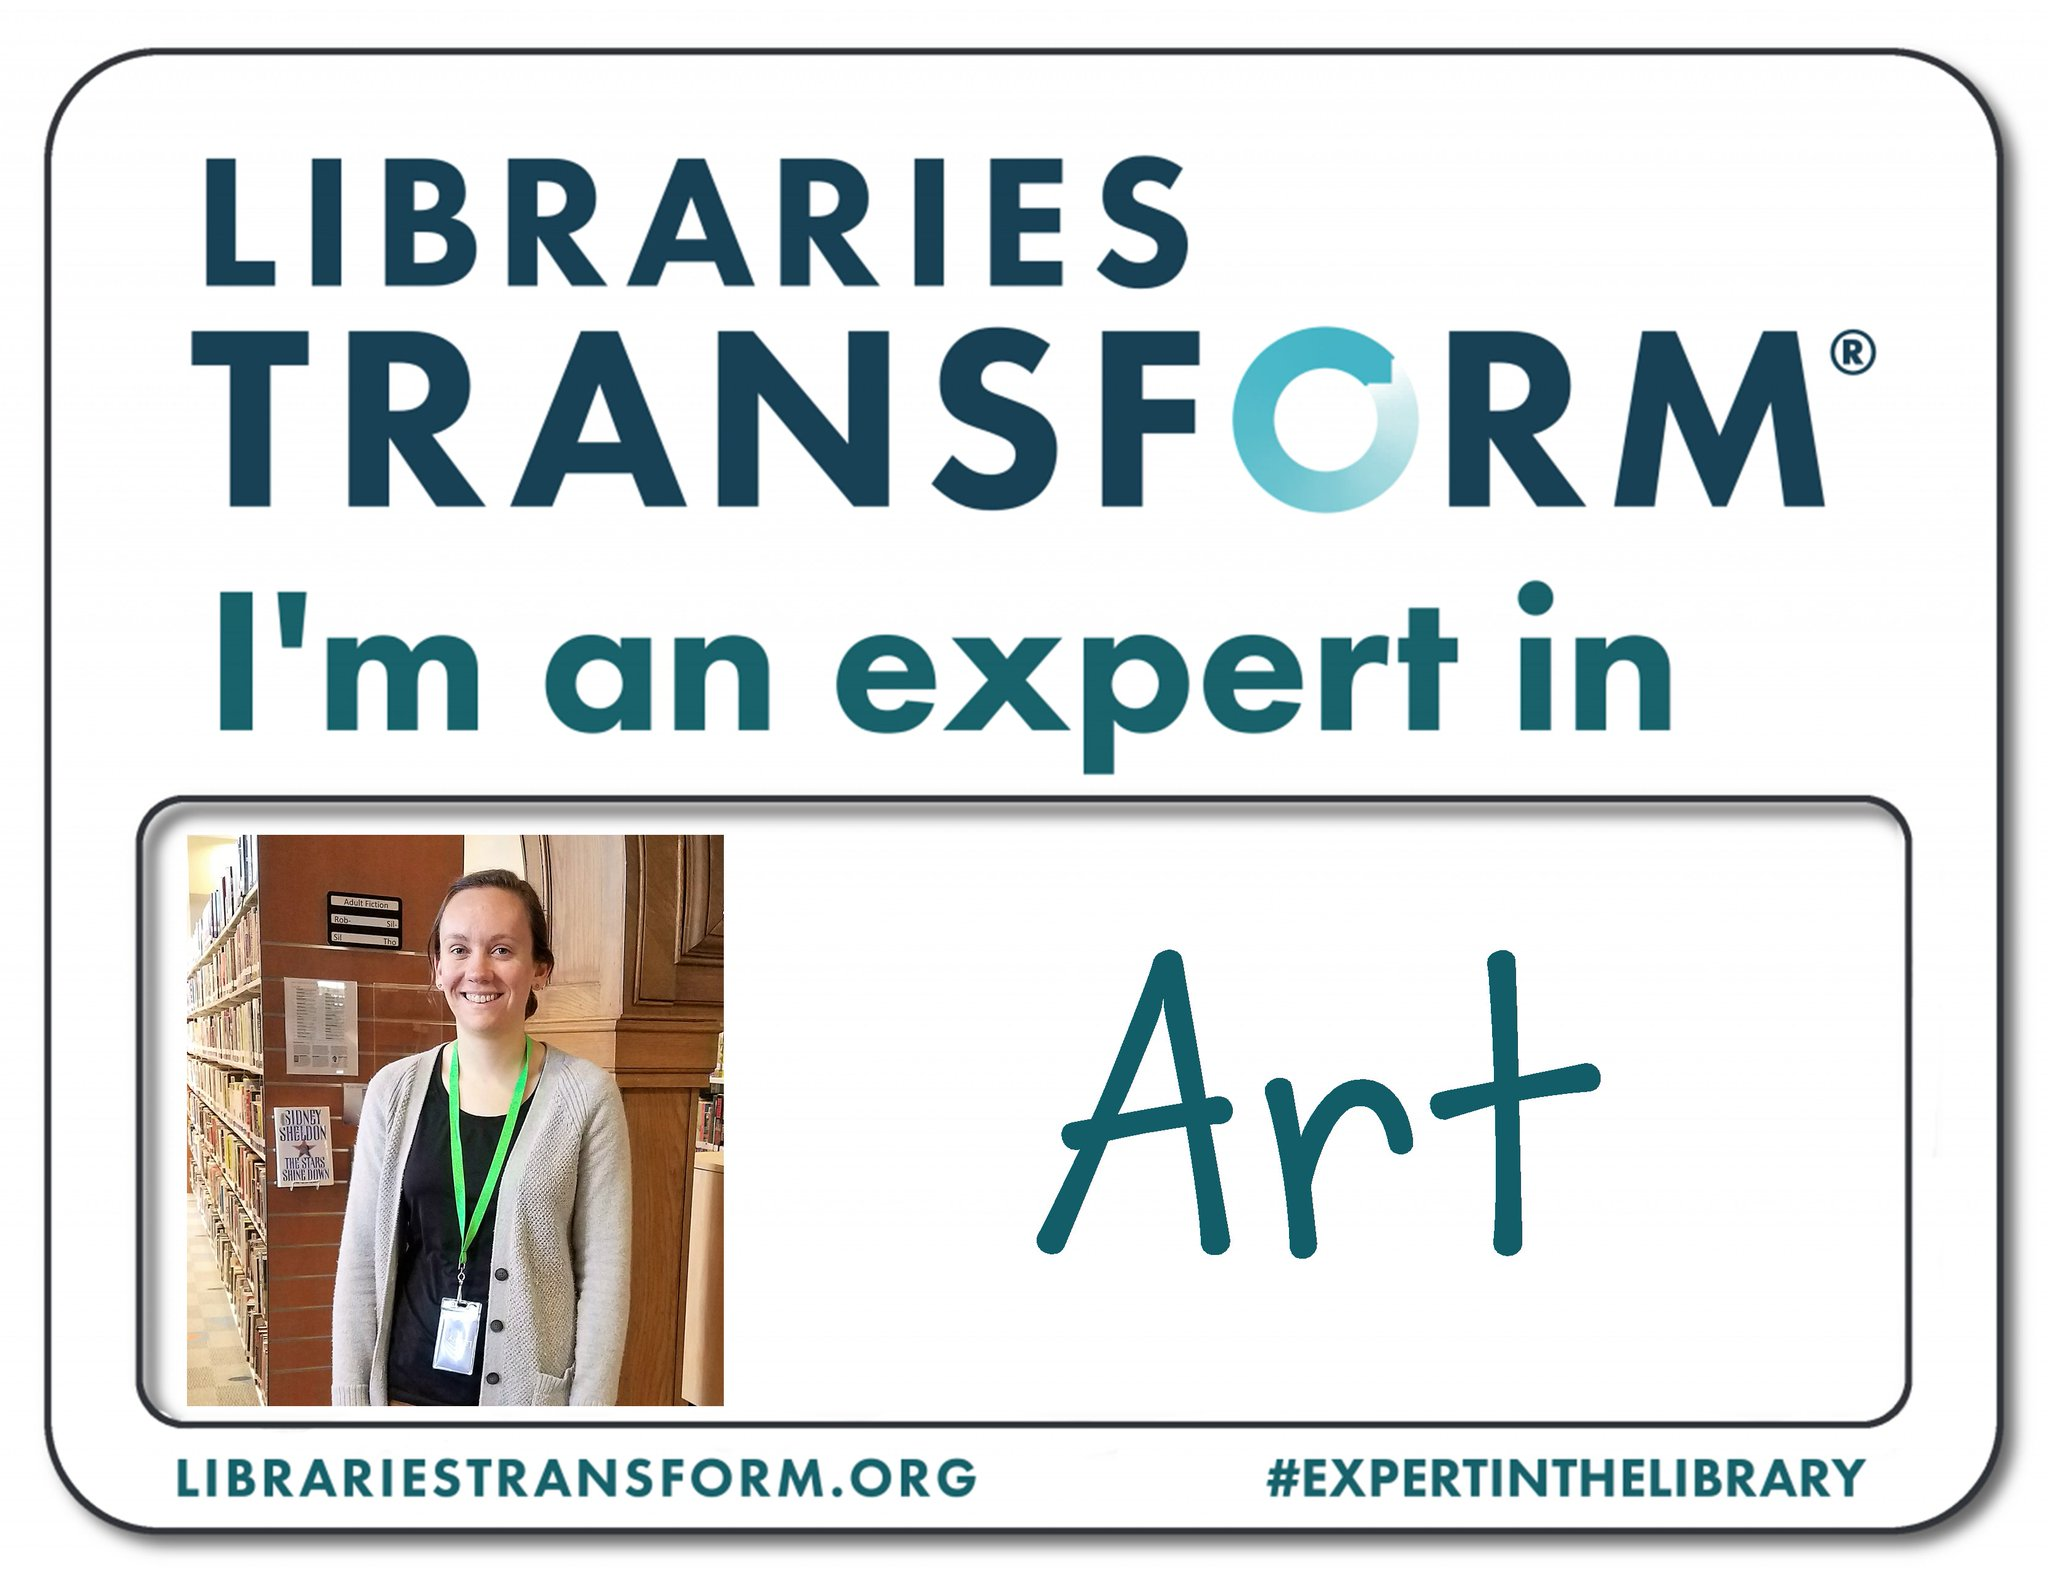 Celebrate #NationalLibraryWeek with us! Meet Amanda, an #ExpertInTheLibrary at KPL. https://t.co/JJKJi9WCD0